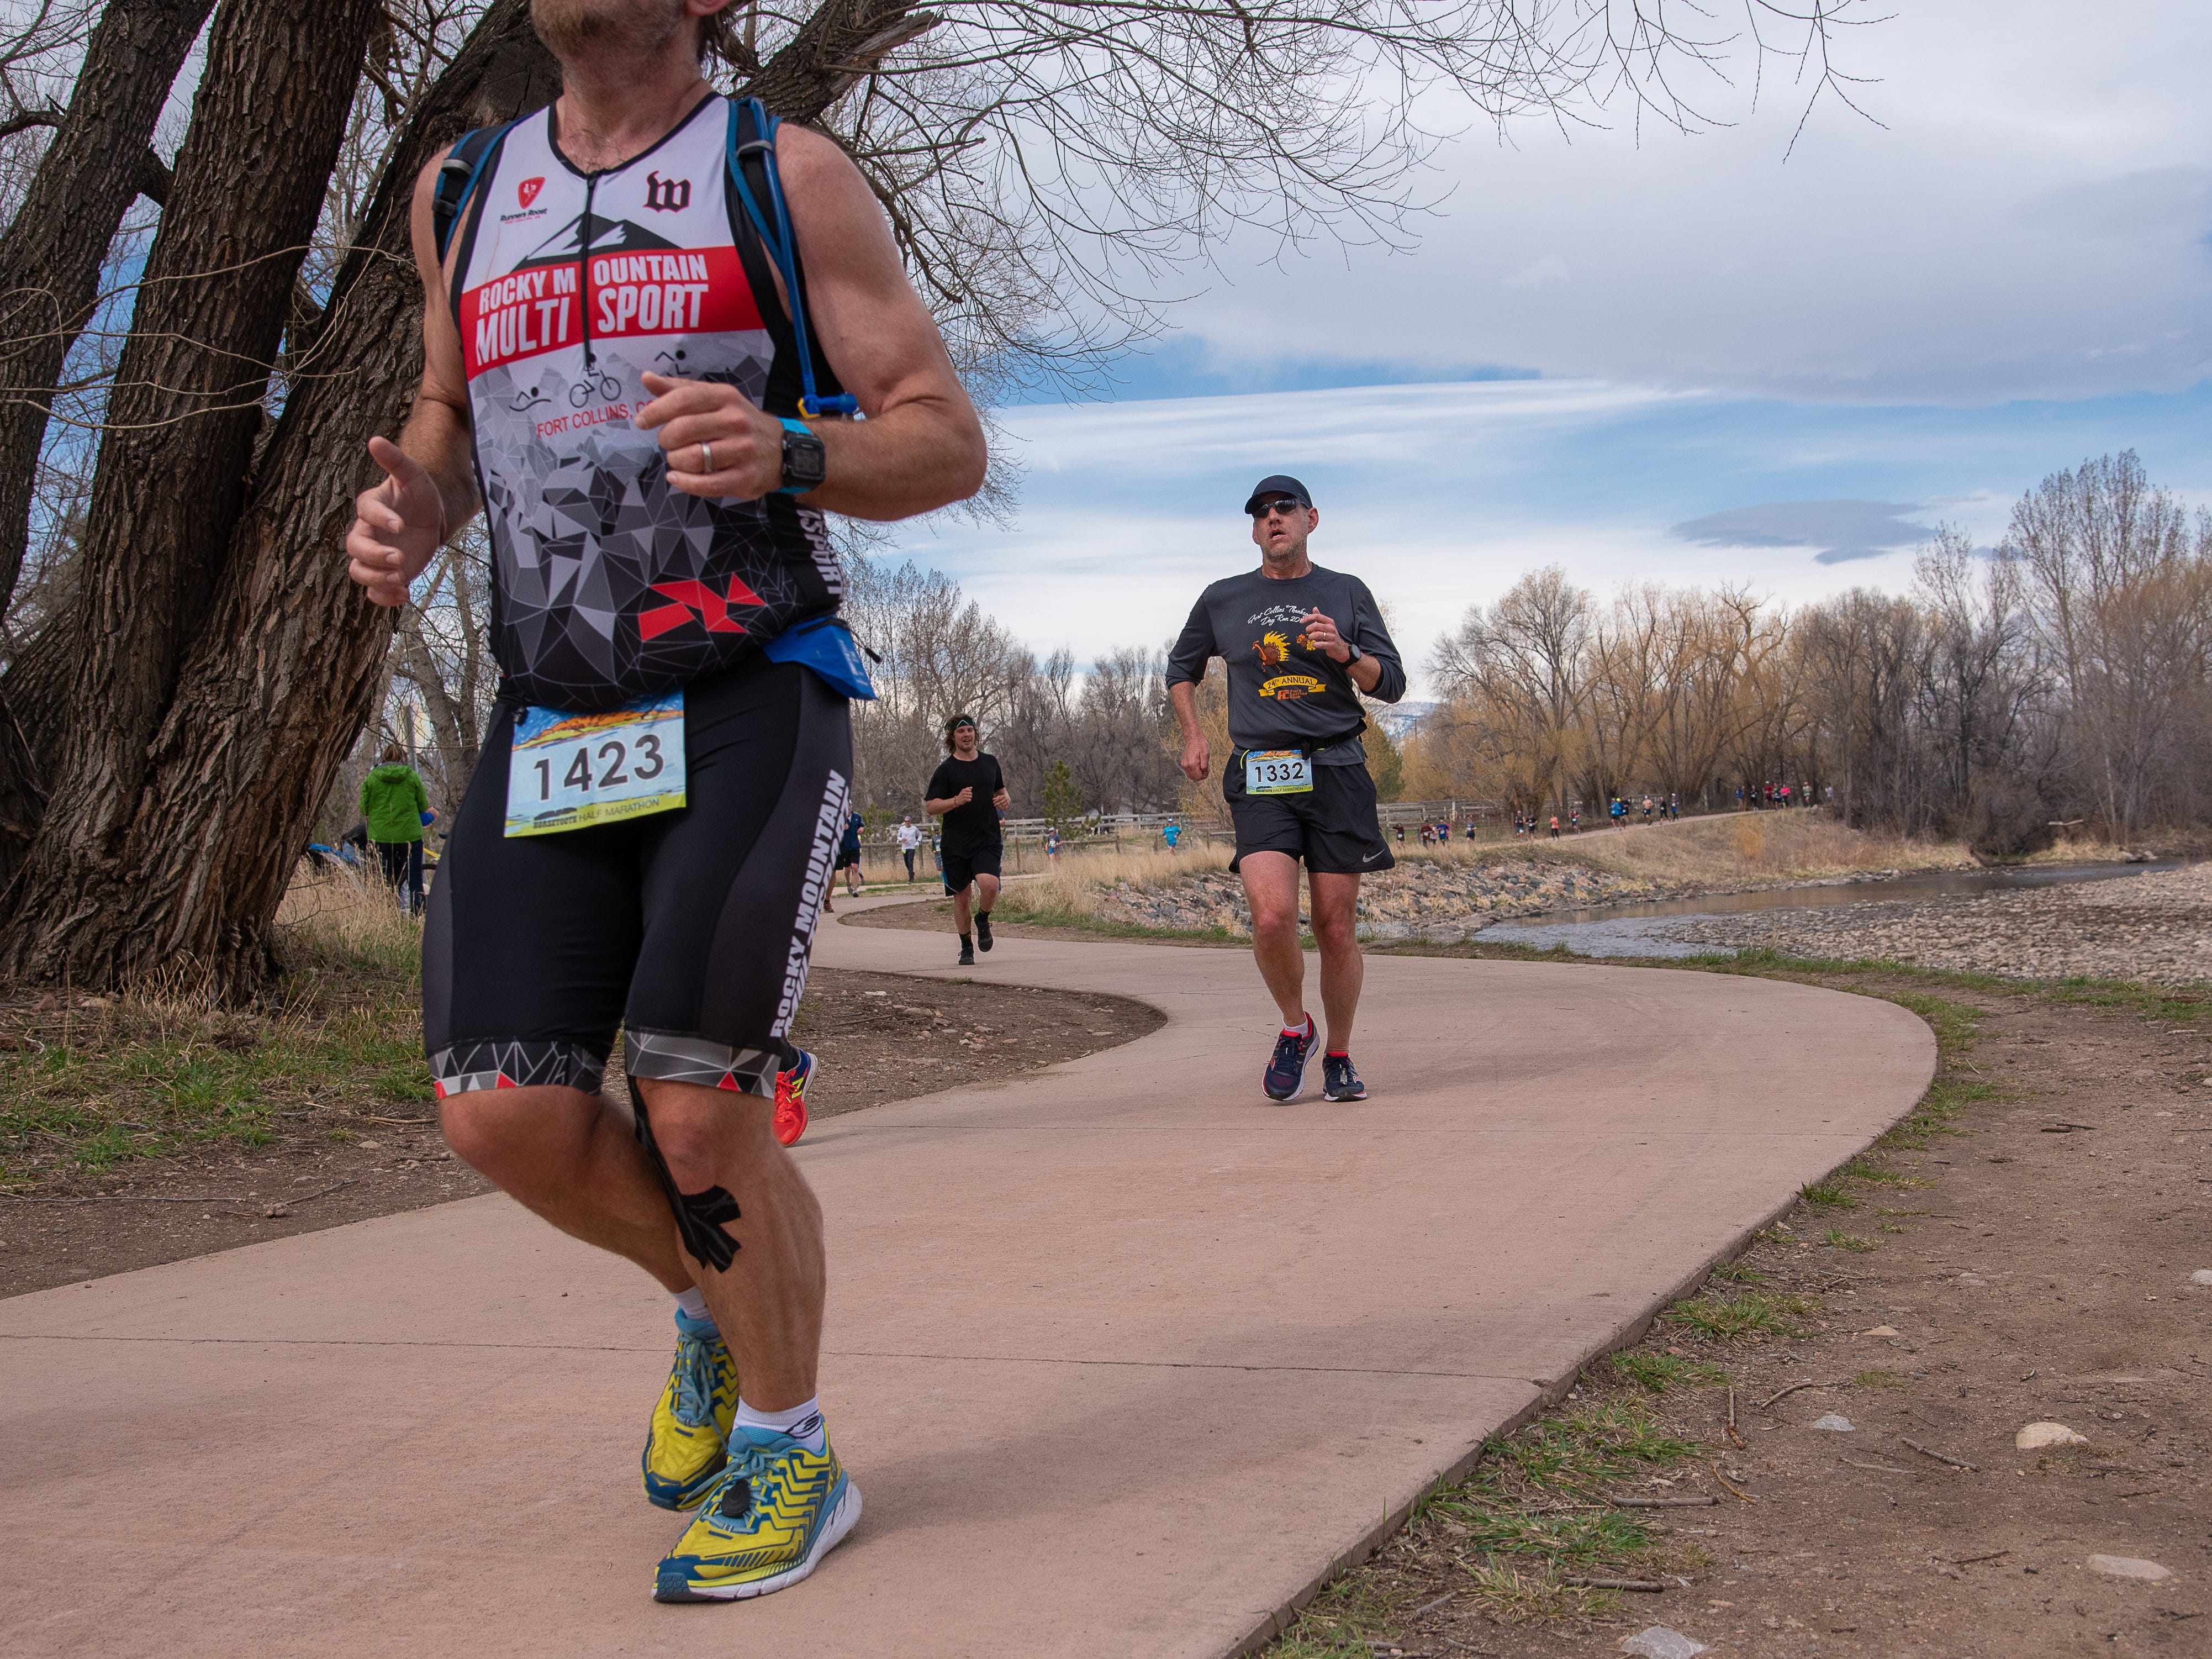 Participants run on the Poudre Trail near Wood Street during the Horsetooth Half Marathon on Sunday, April 14, 2019, in Fort Collins, Colo.